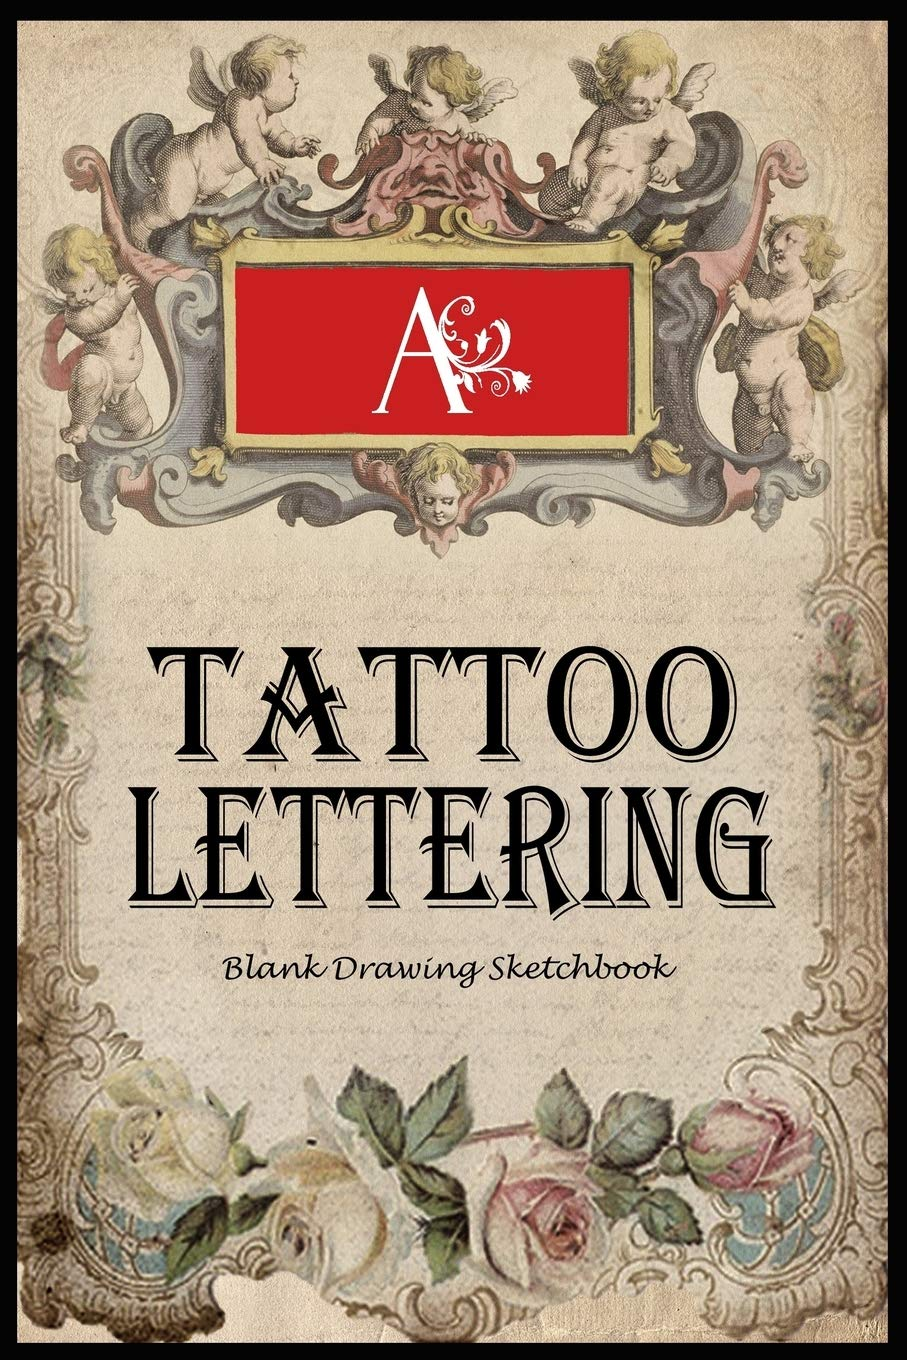 Amazon Com Tattoo Lettering Blank Sketchbook For Drawing And Doodling Body Art Ideas Tattoo Artist Gift Journal 9781699524084 Publishers Unique Daily Books